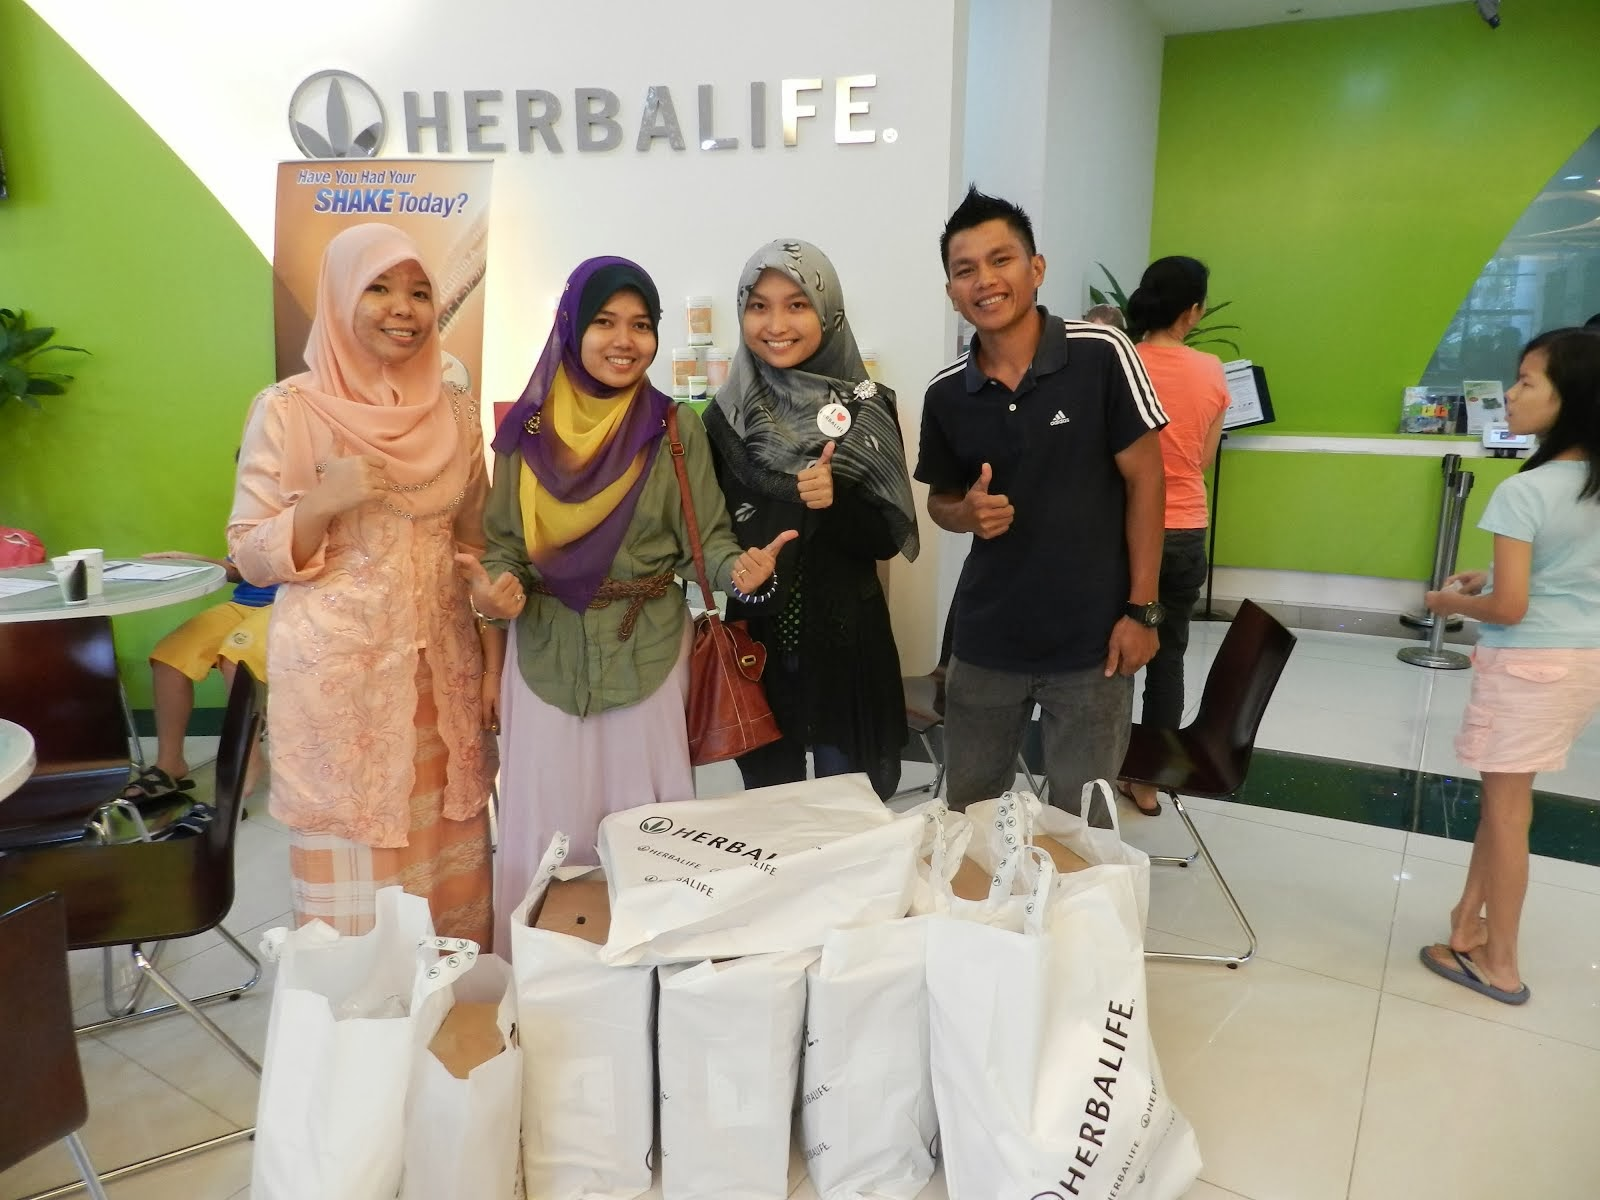 HERBALIFE - 0193190117